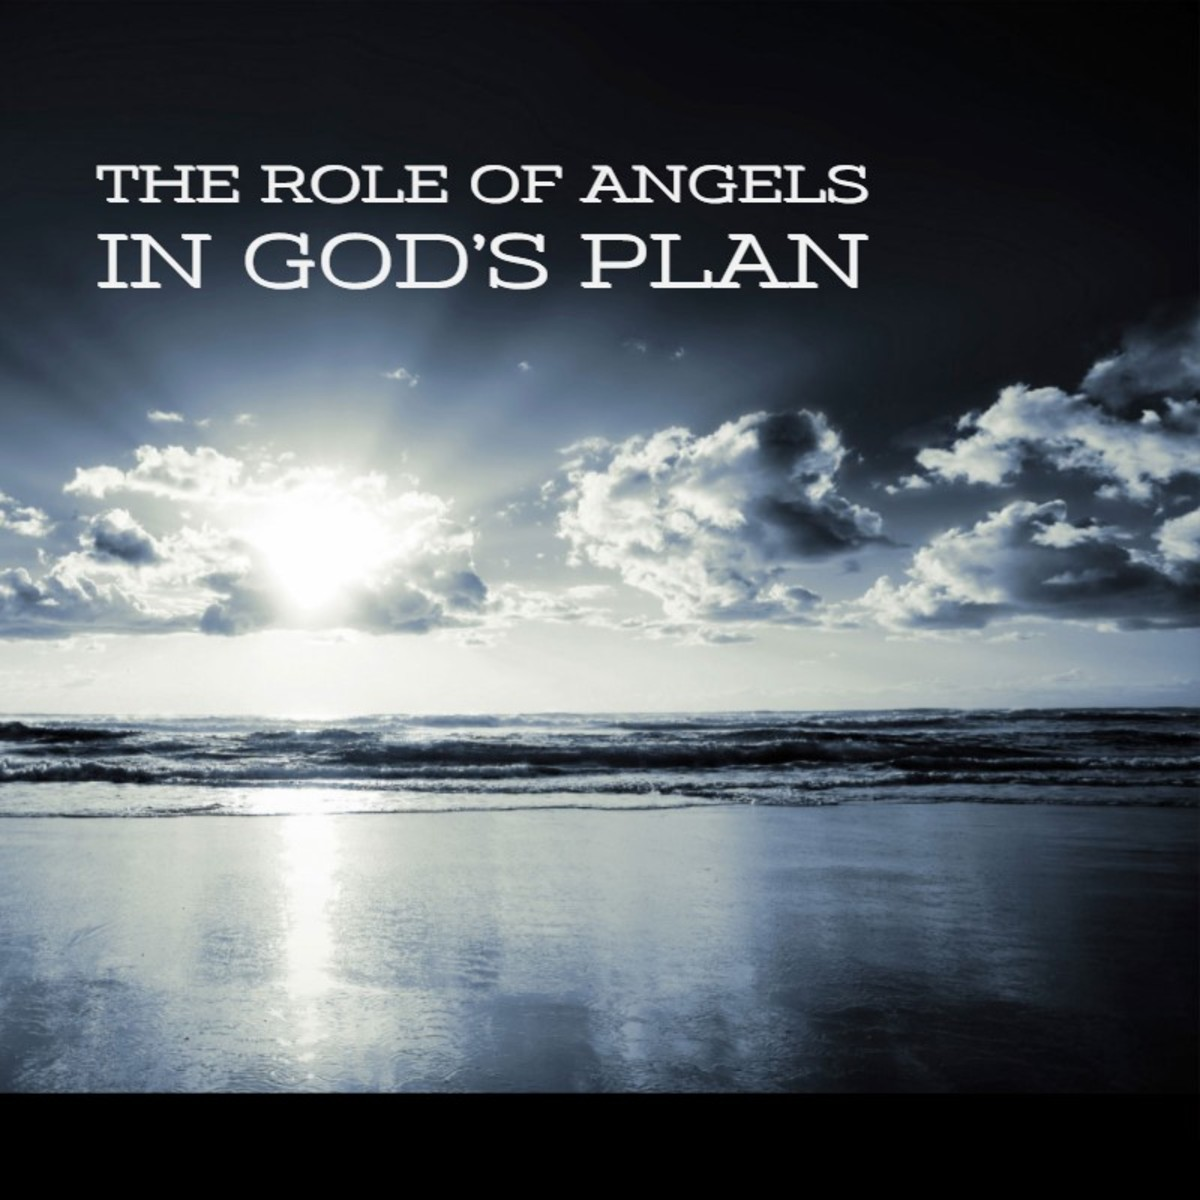 What is the role of Angels in God's plan for humanity?